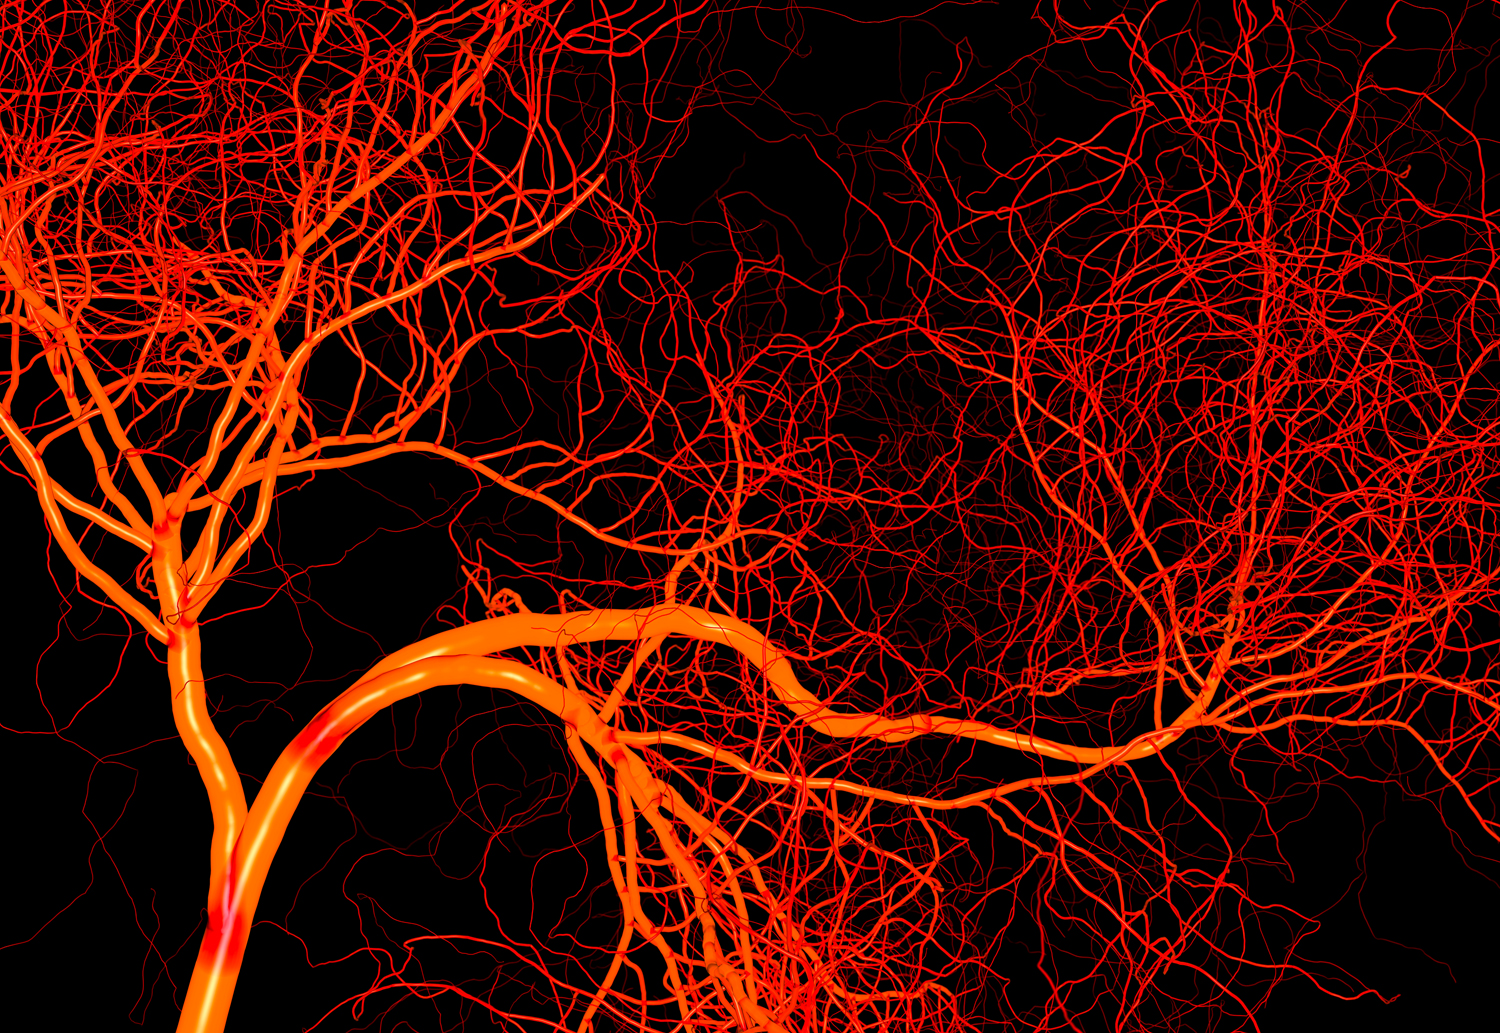 Blood Vessels | The Franklin Institute